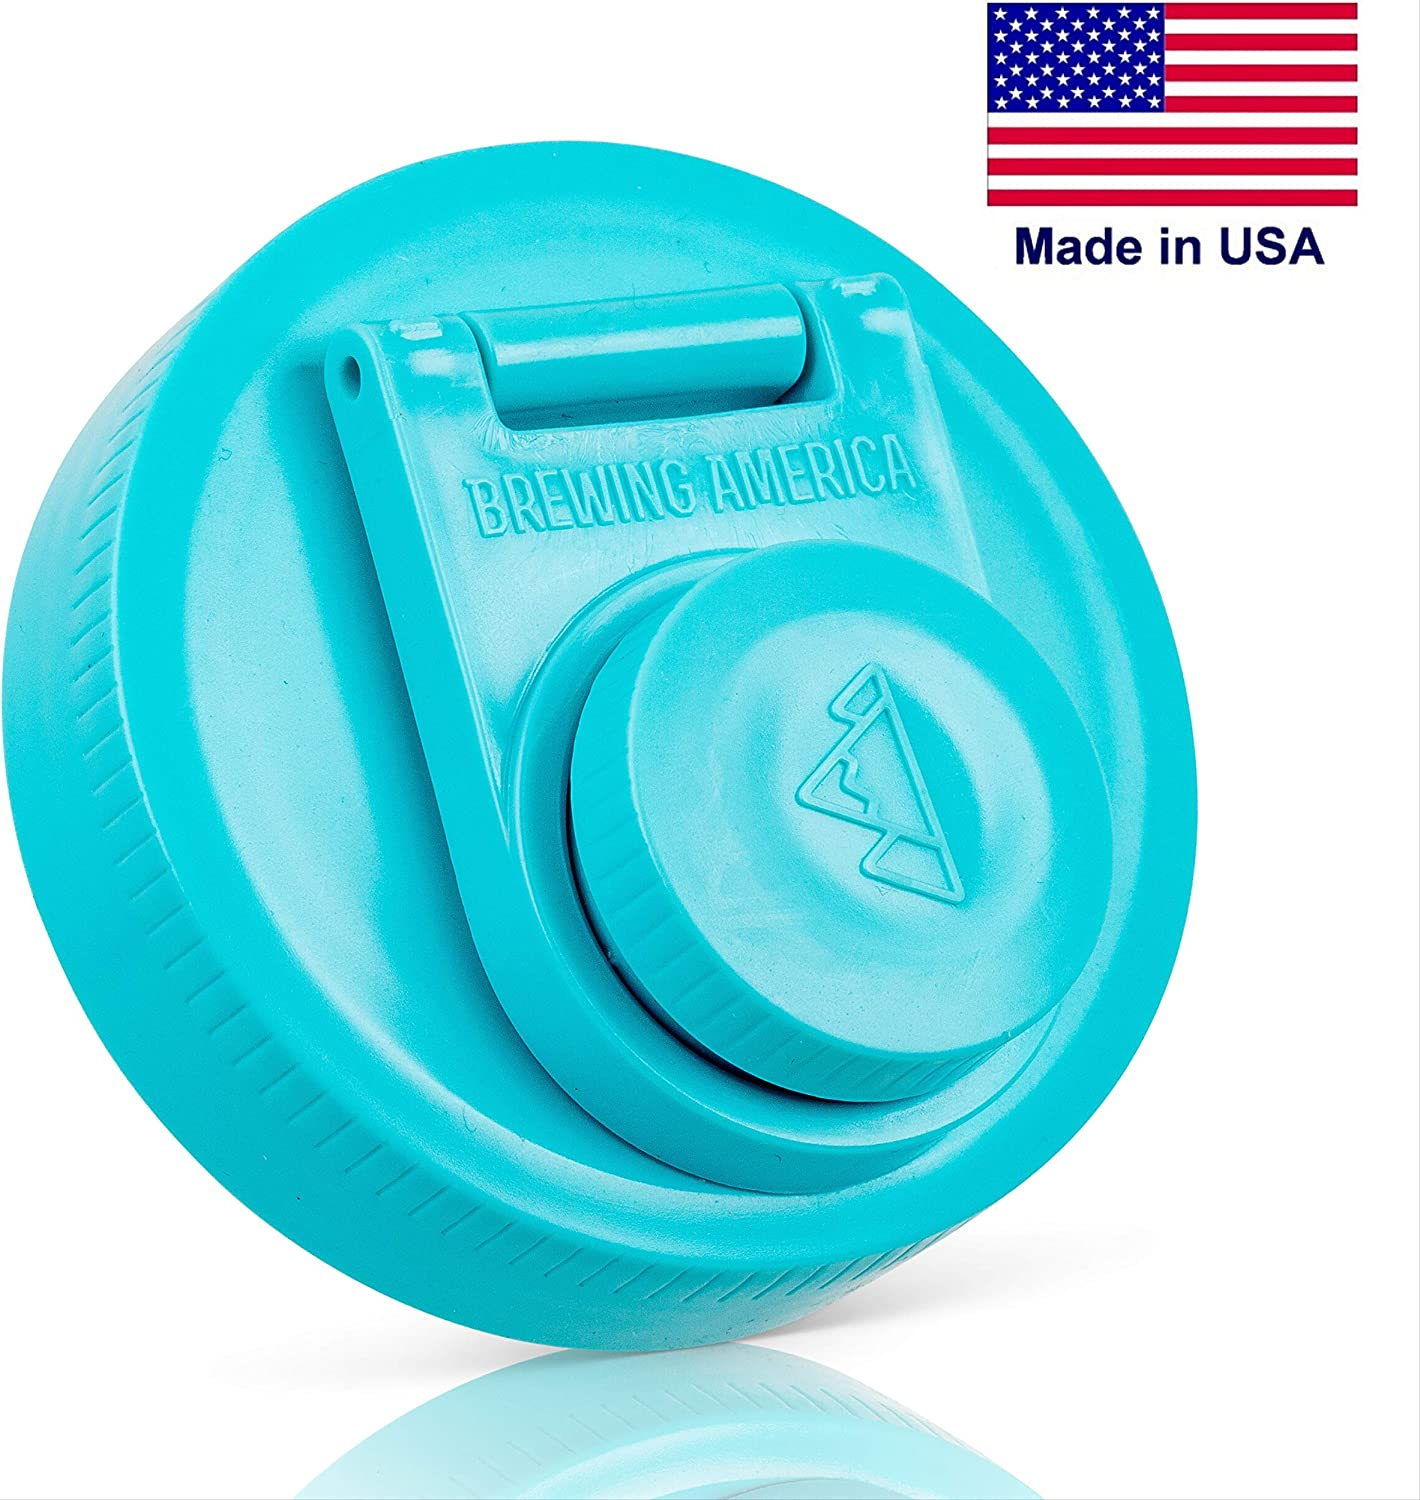 Mason Jar Lids Wide Mouth Plastic 1 Pack - Leak Proof with Flip Cap Screw Top Pouring Spout and Drink Hole - America's Mason Jar Screw Top Lid - Fits Kerr and Ball Canning Jars - MADE IN USA (TEAL, 1)